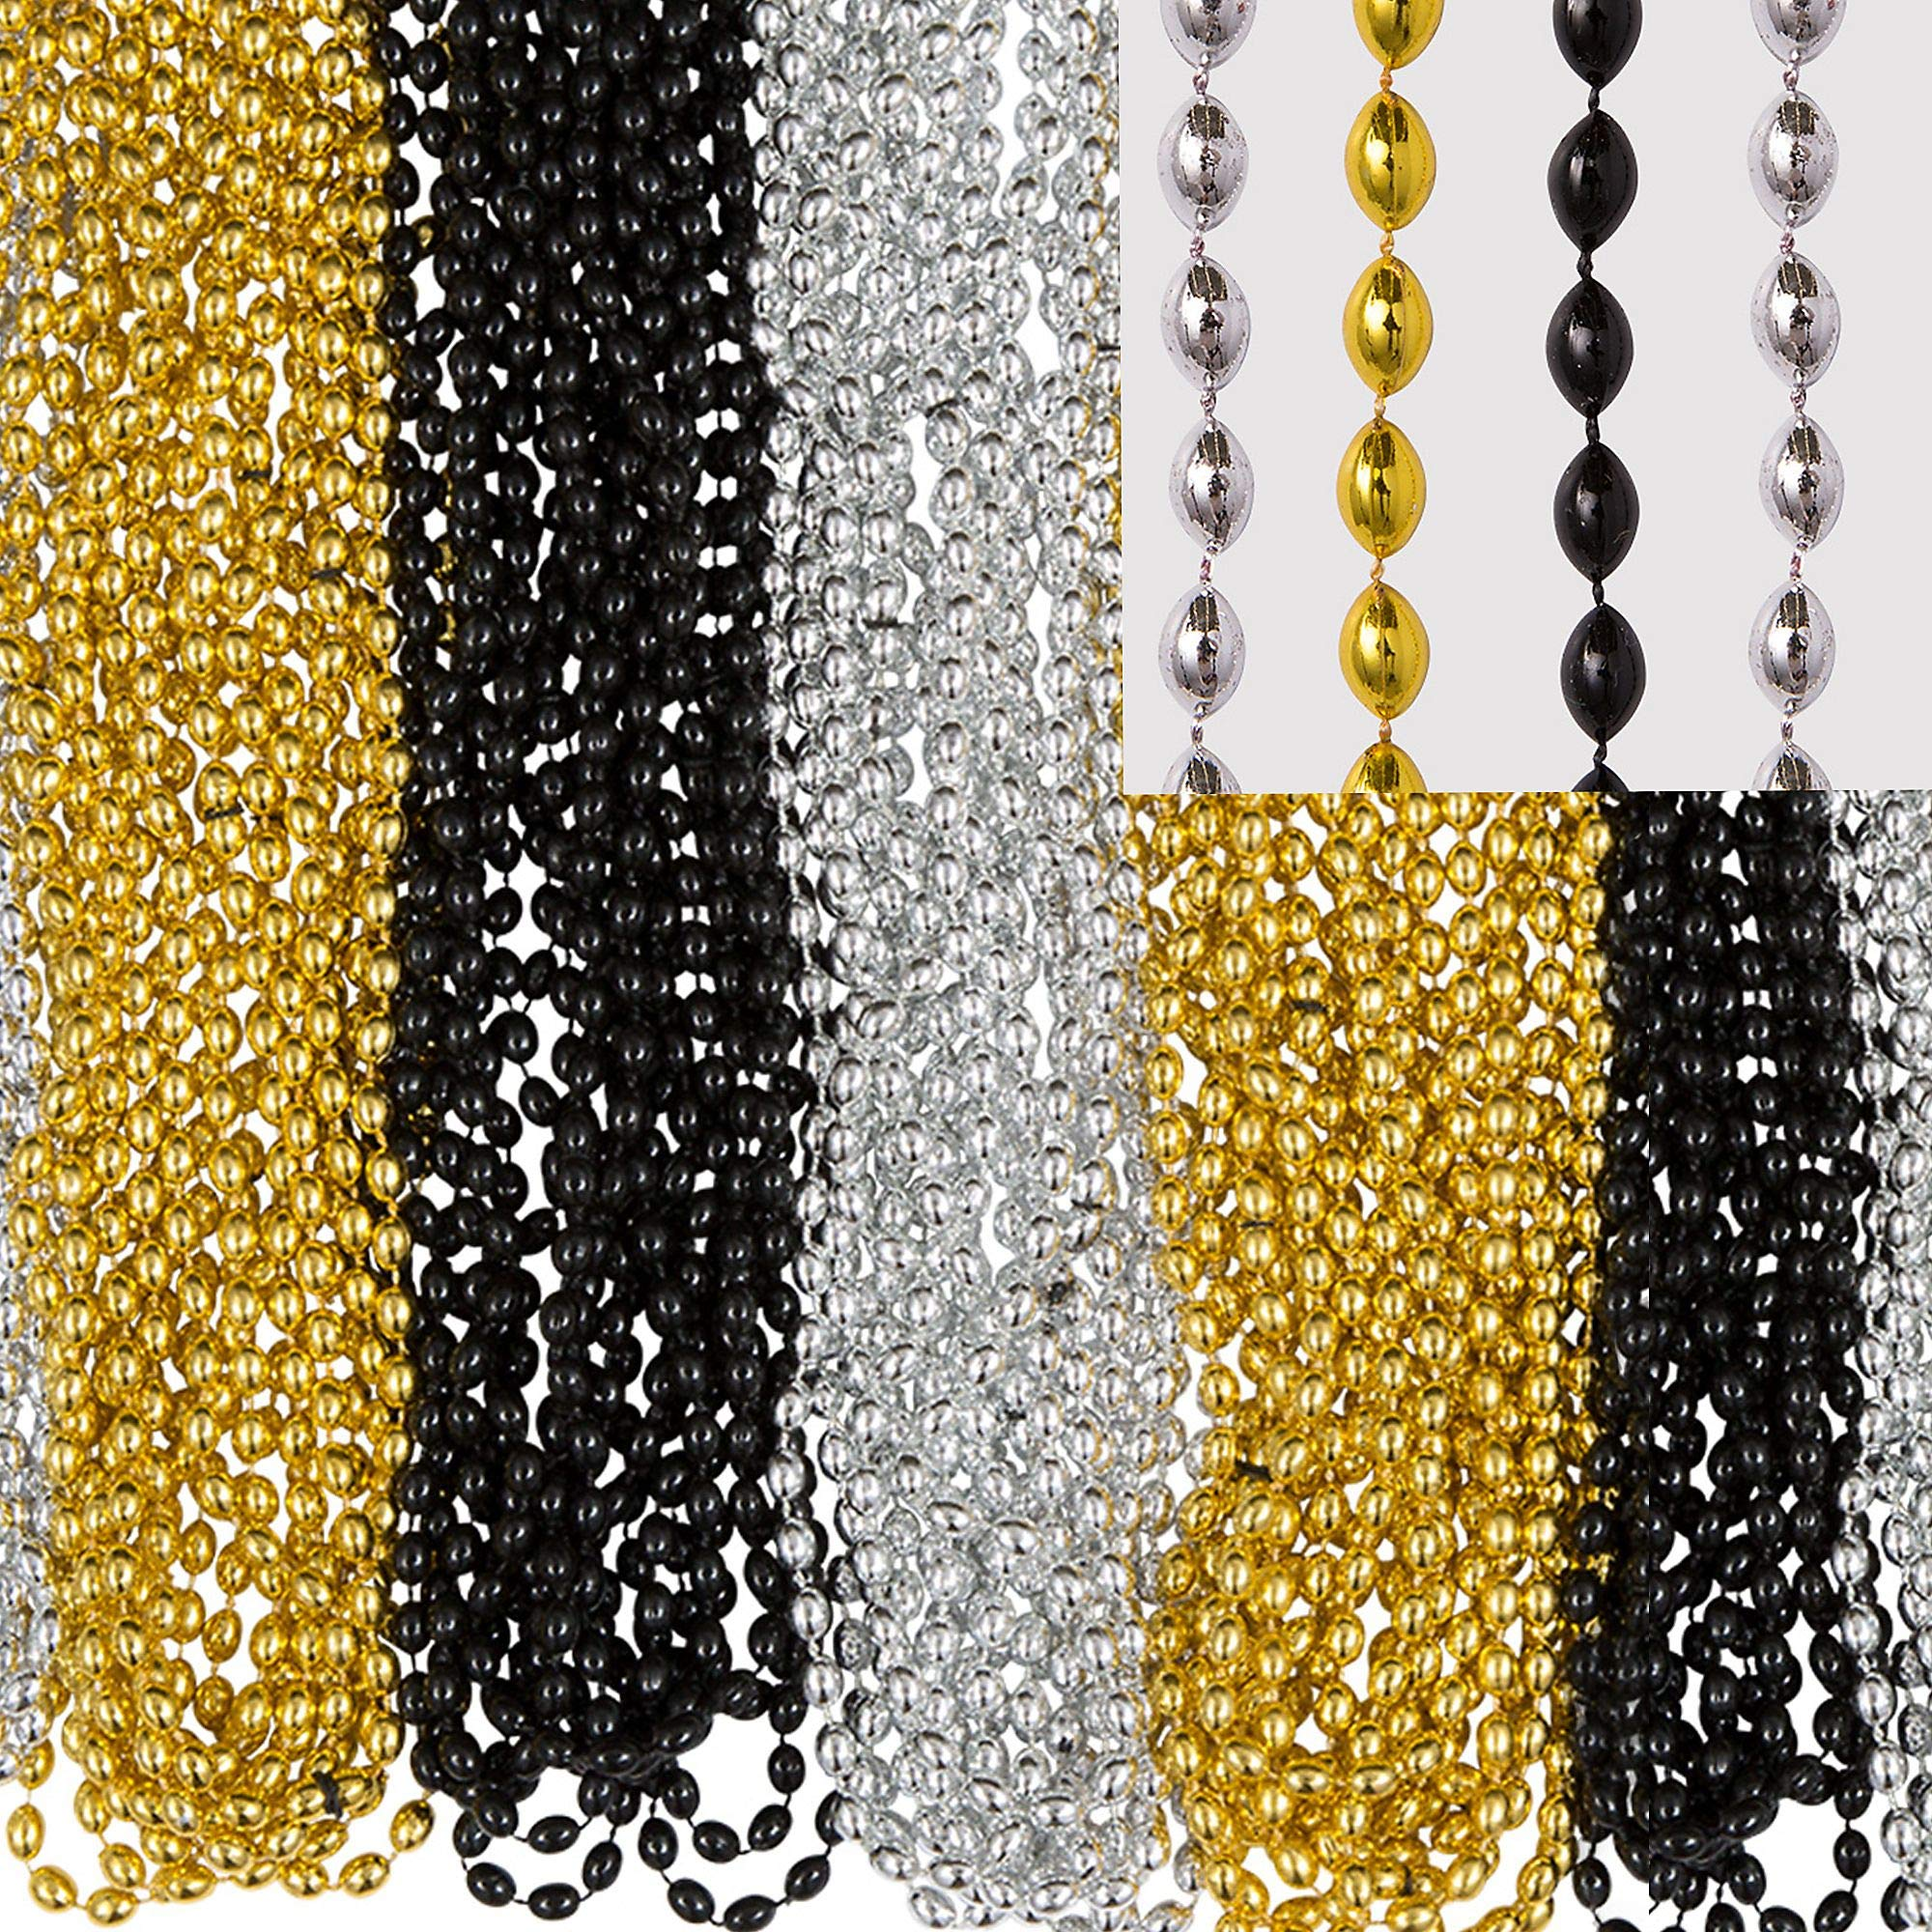 Amscan Bead Necklace, Party Accessory,  Black, Silver, Gold